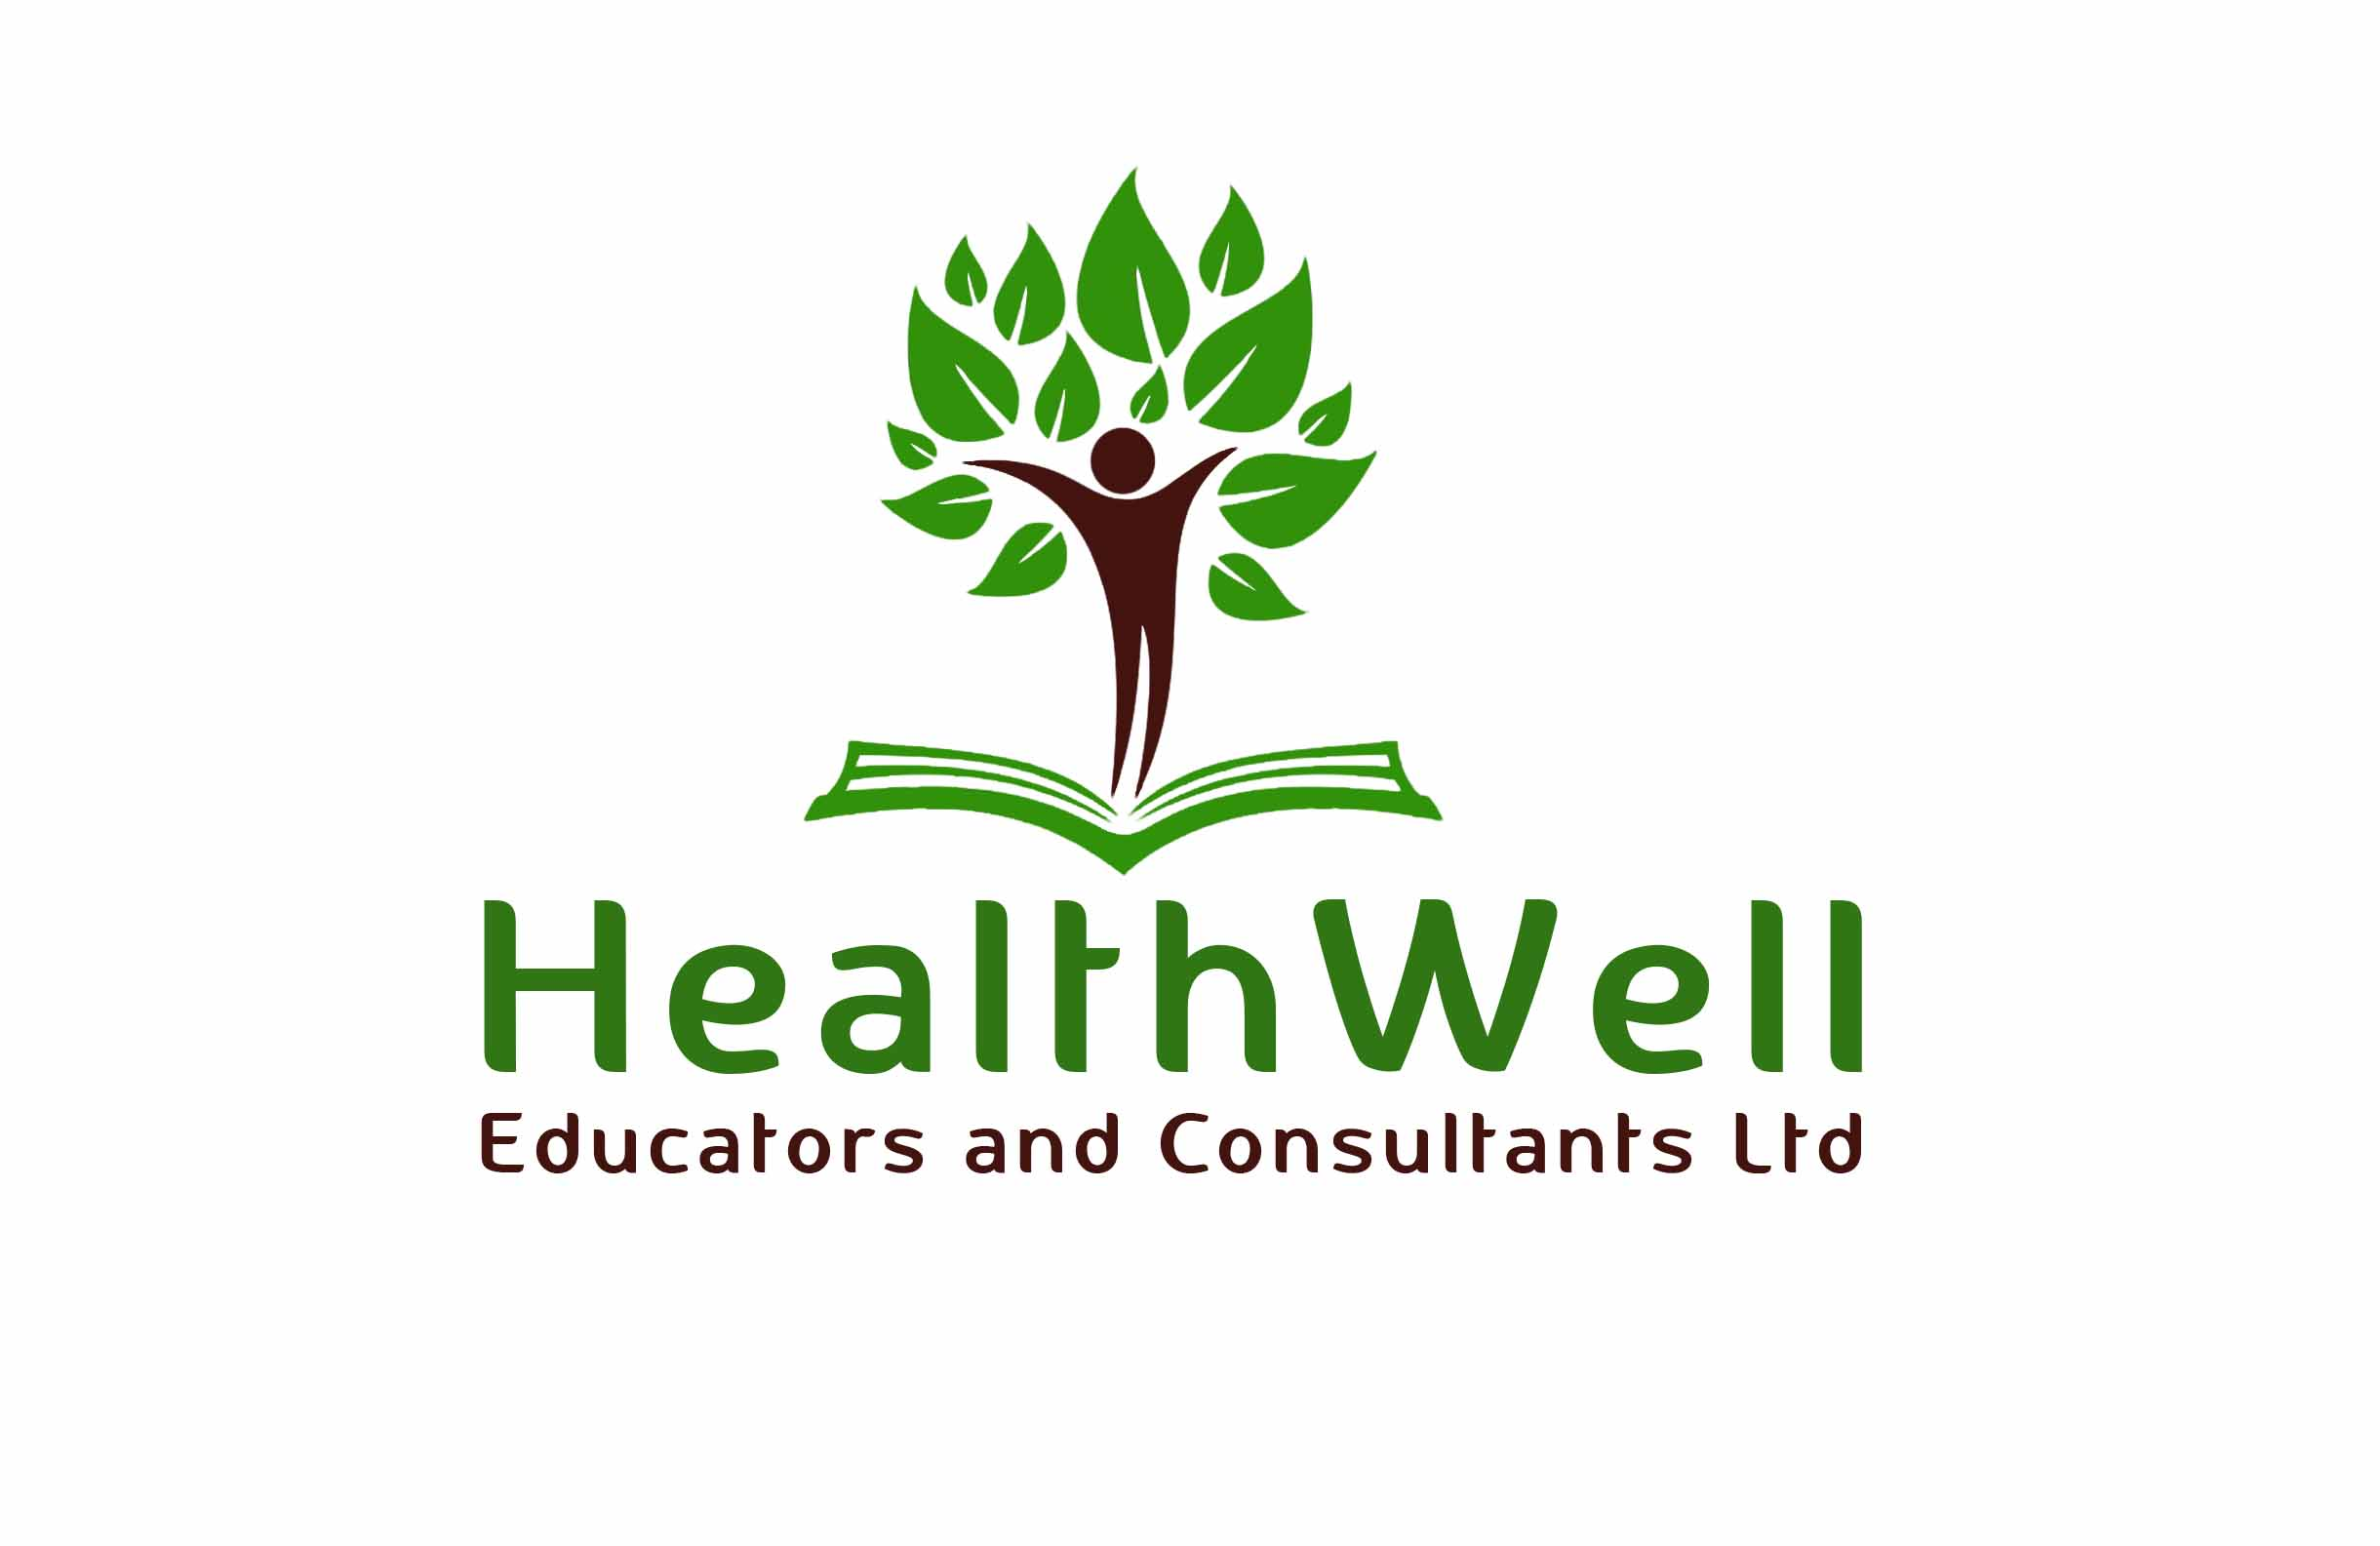 HealthWell Educators and Consultants